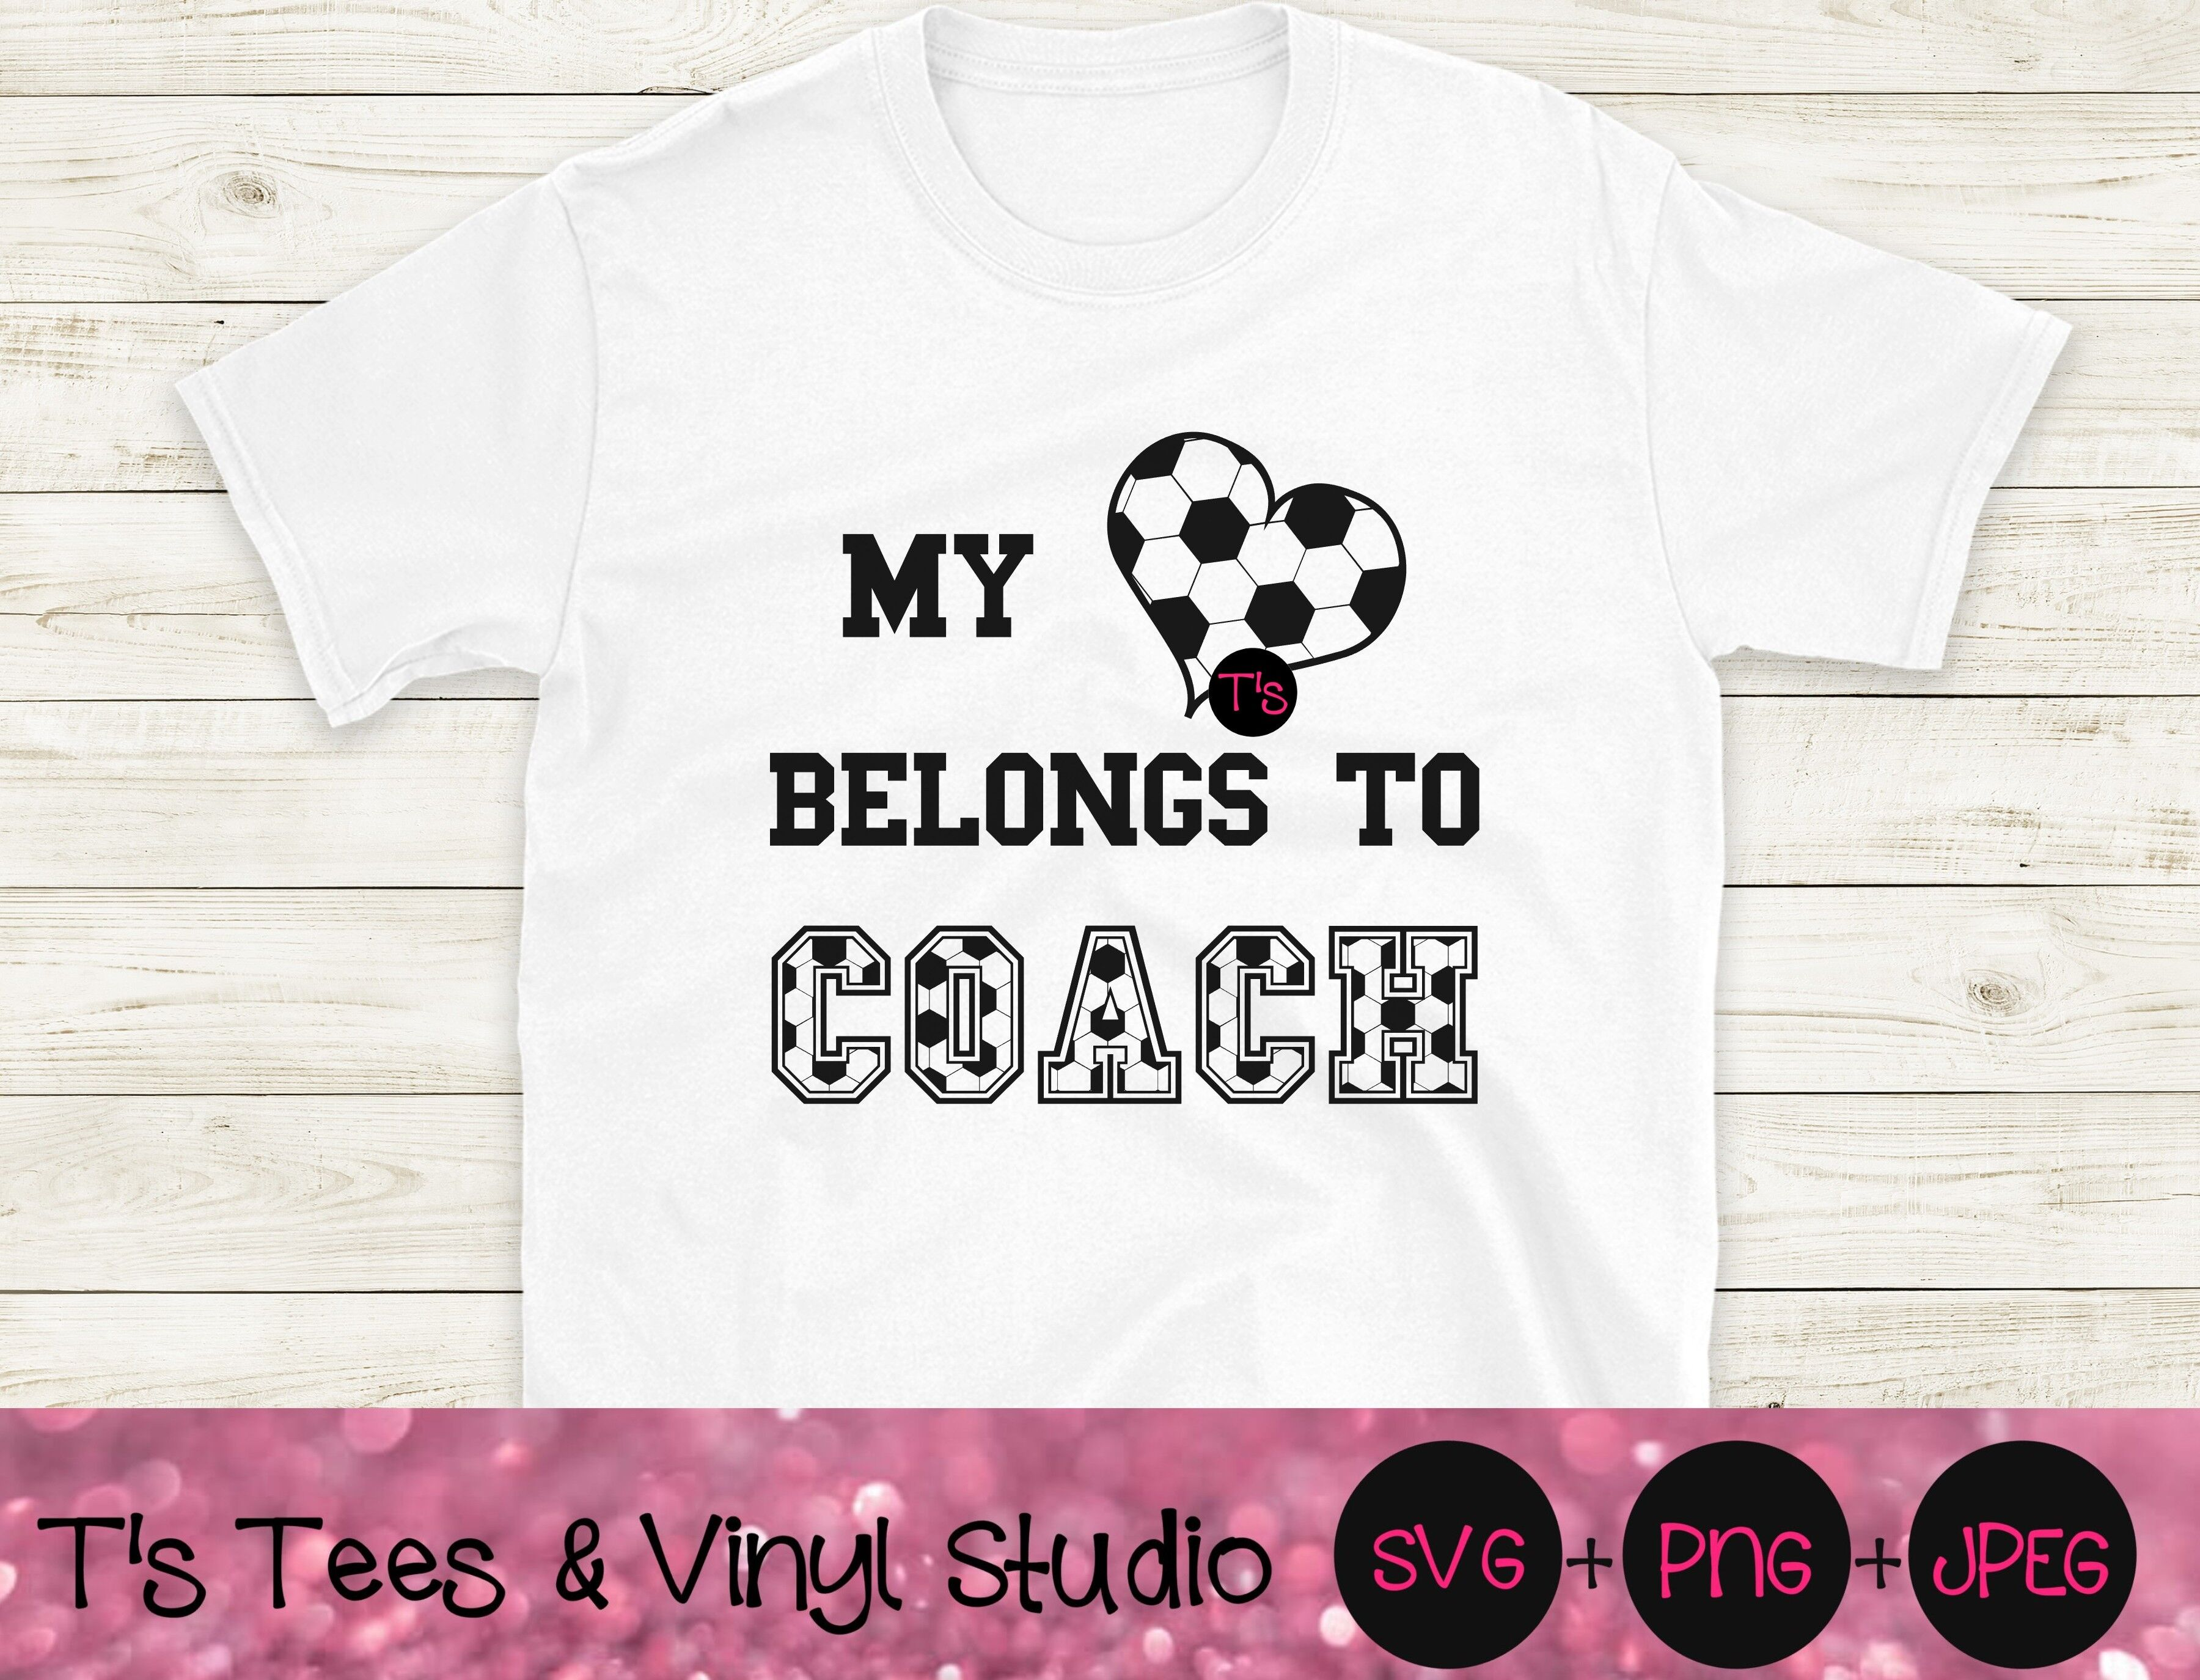 Soccer Svg Coach Svg Heart Svg Soccer Png Coach Png Love Soccer S By T S Tees Vinyl Studio Thehungryjpeg Com